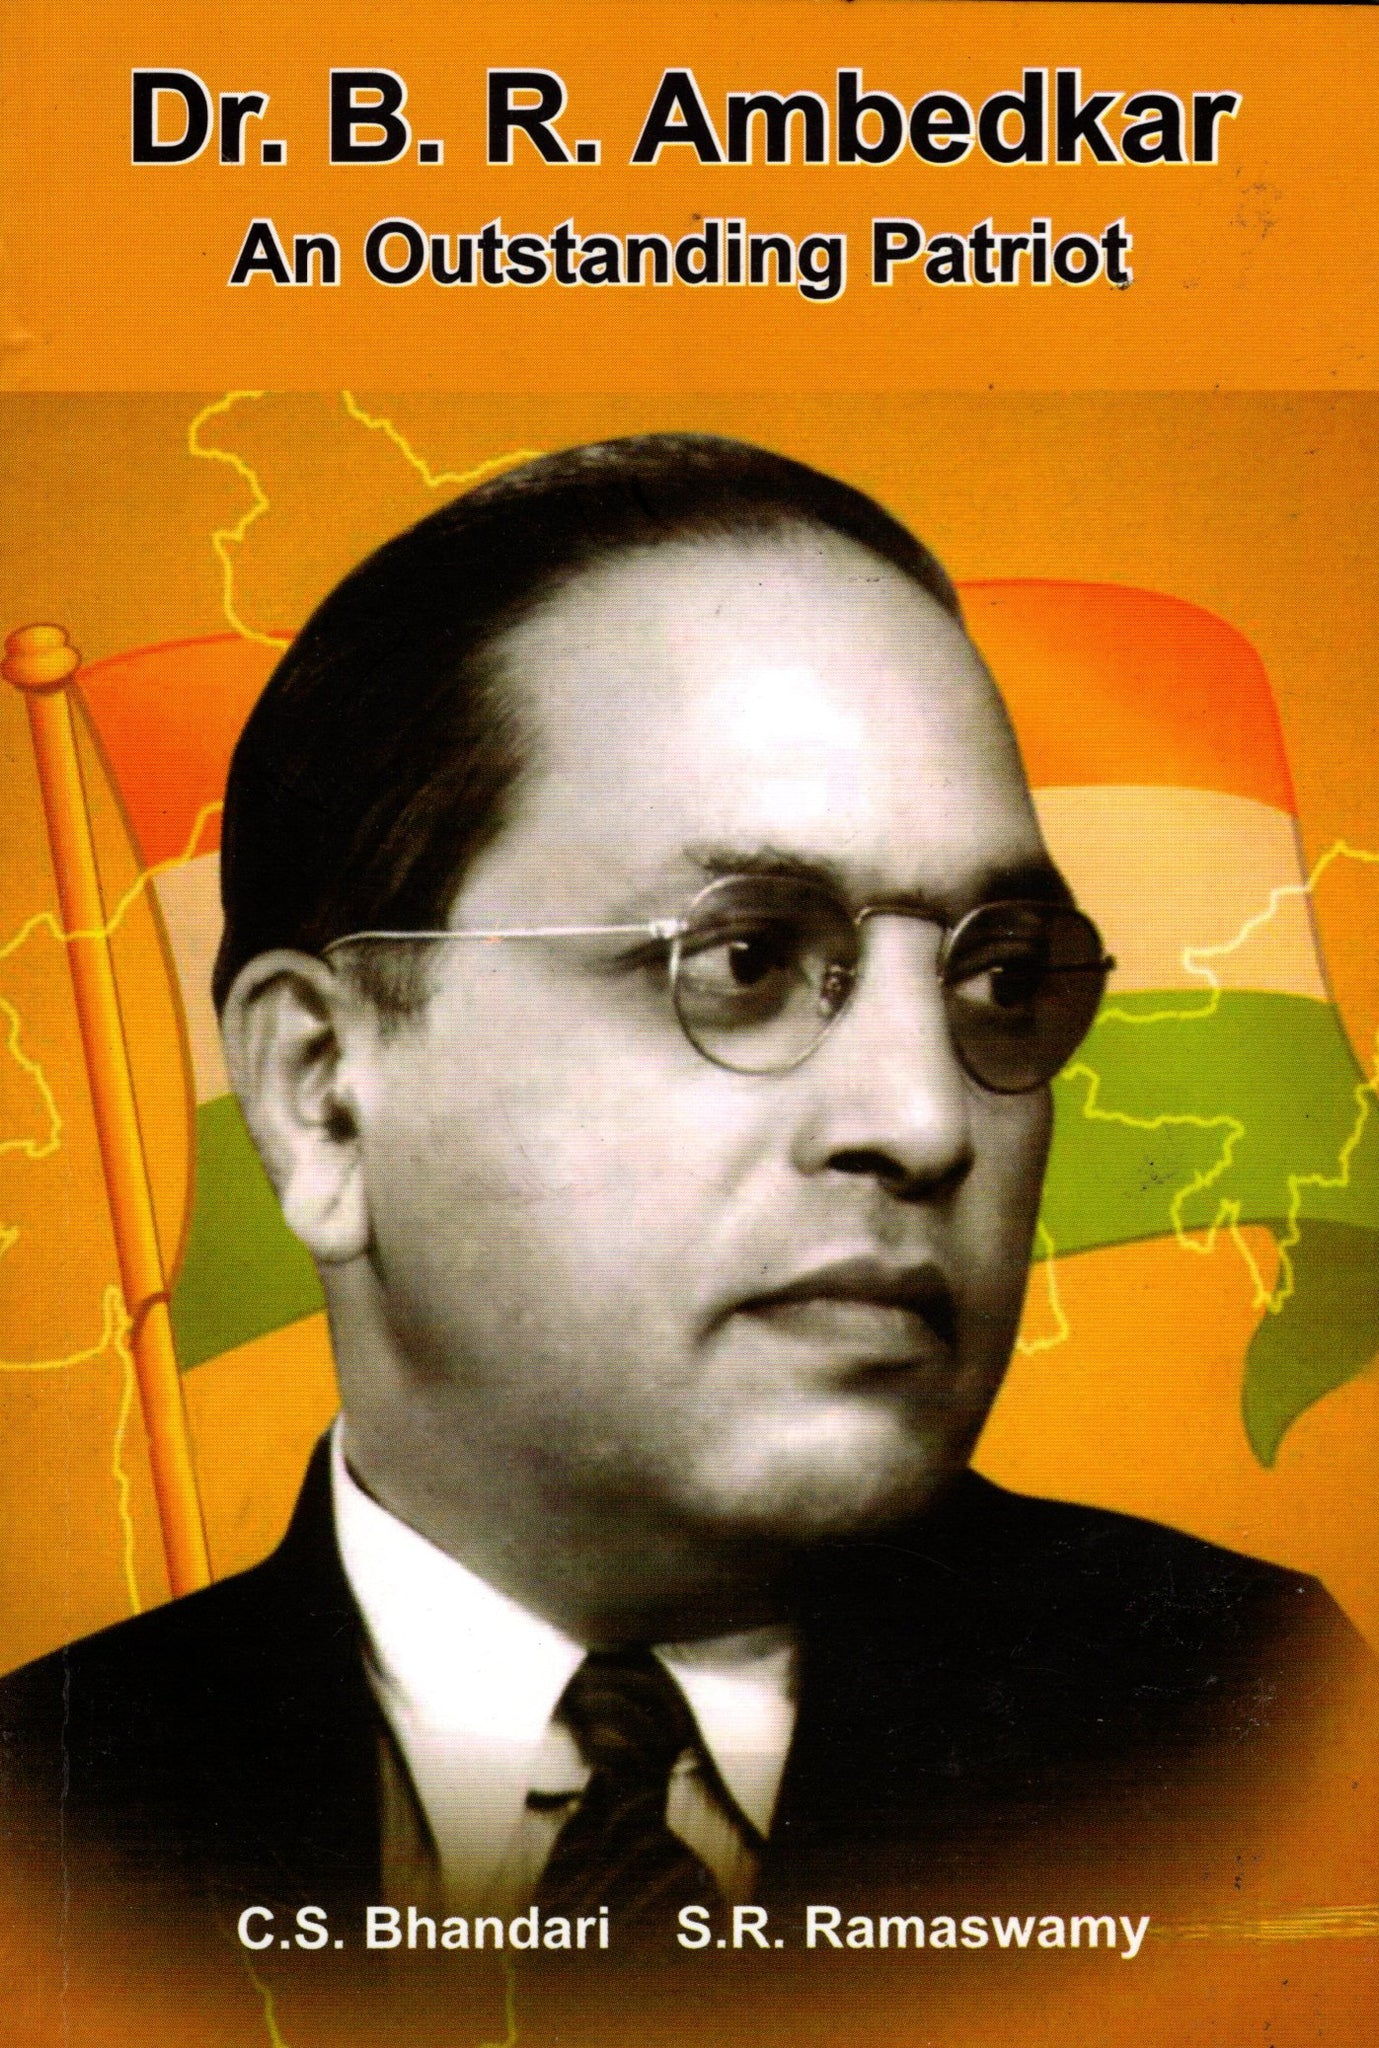 DR.B.R.Ambedkar An Outstanding Patriot